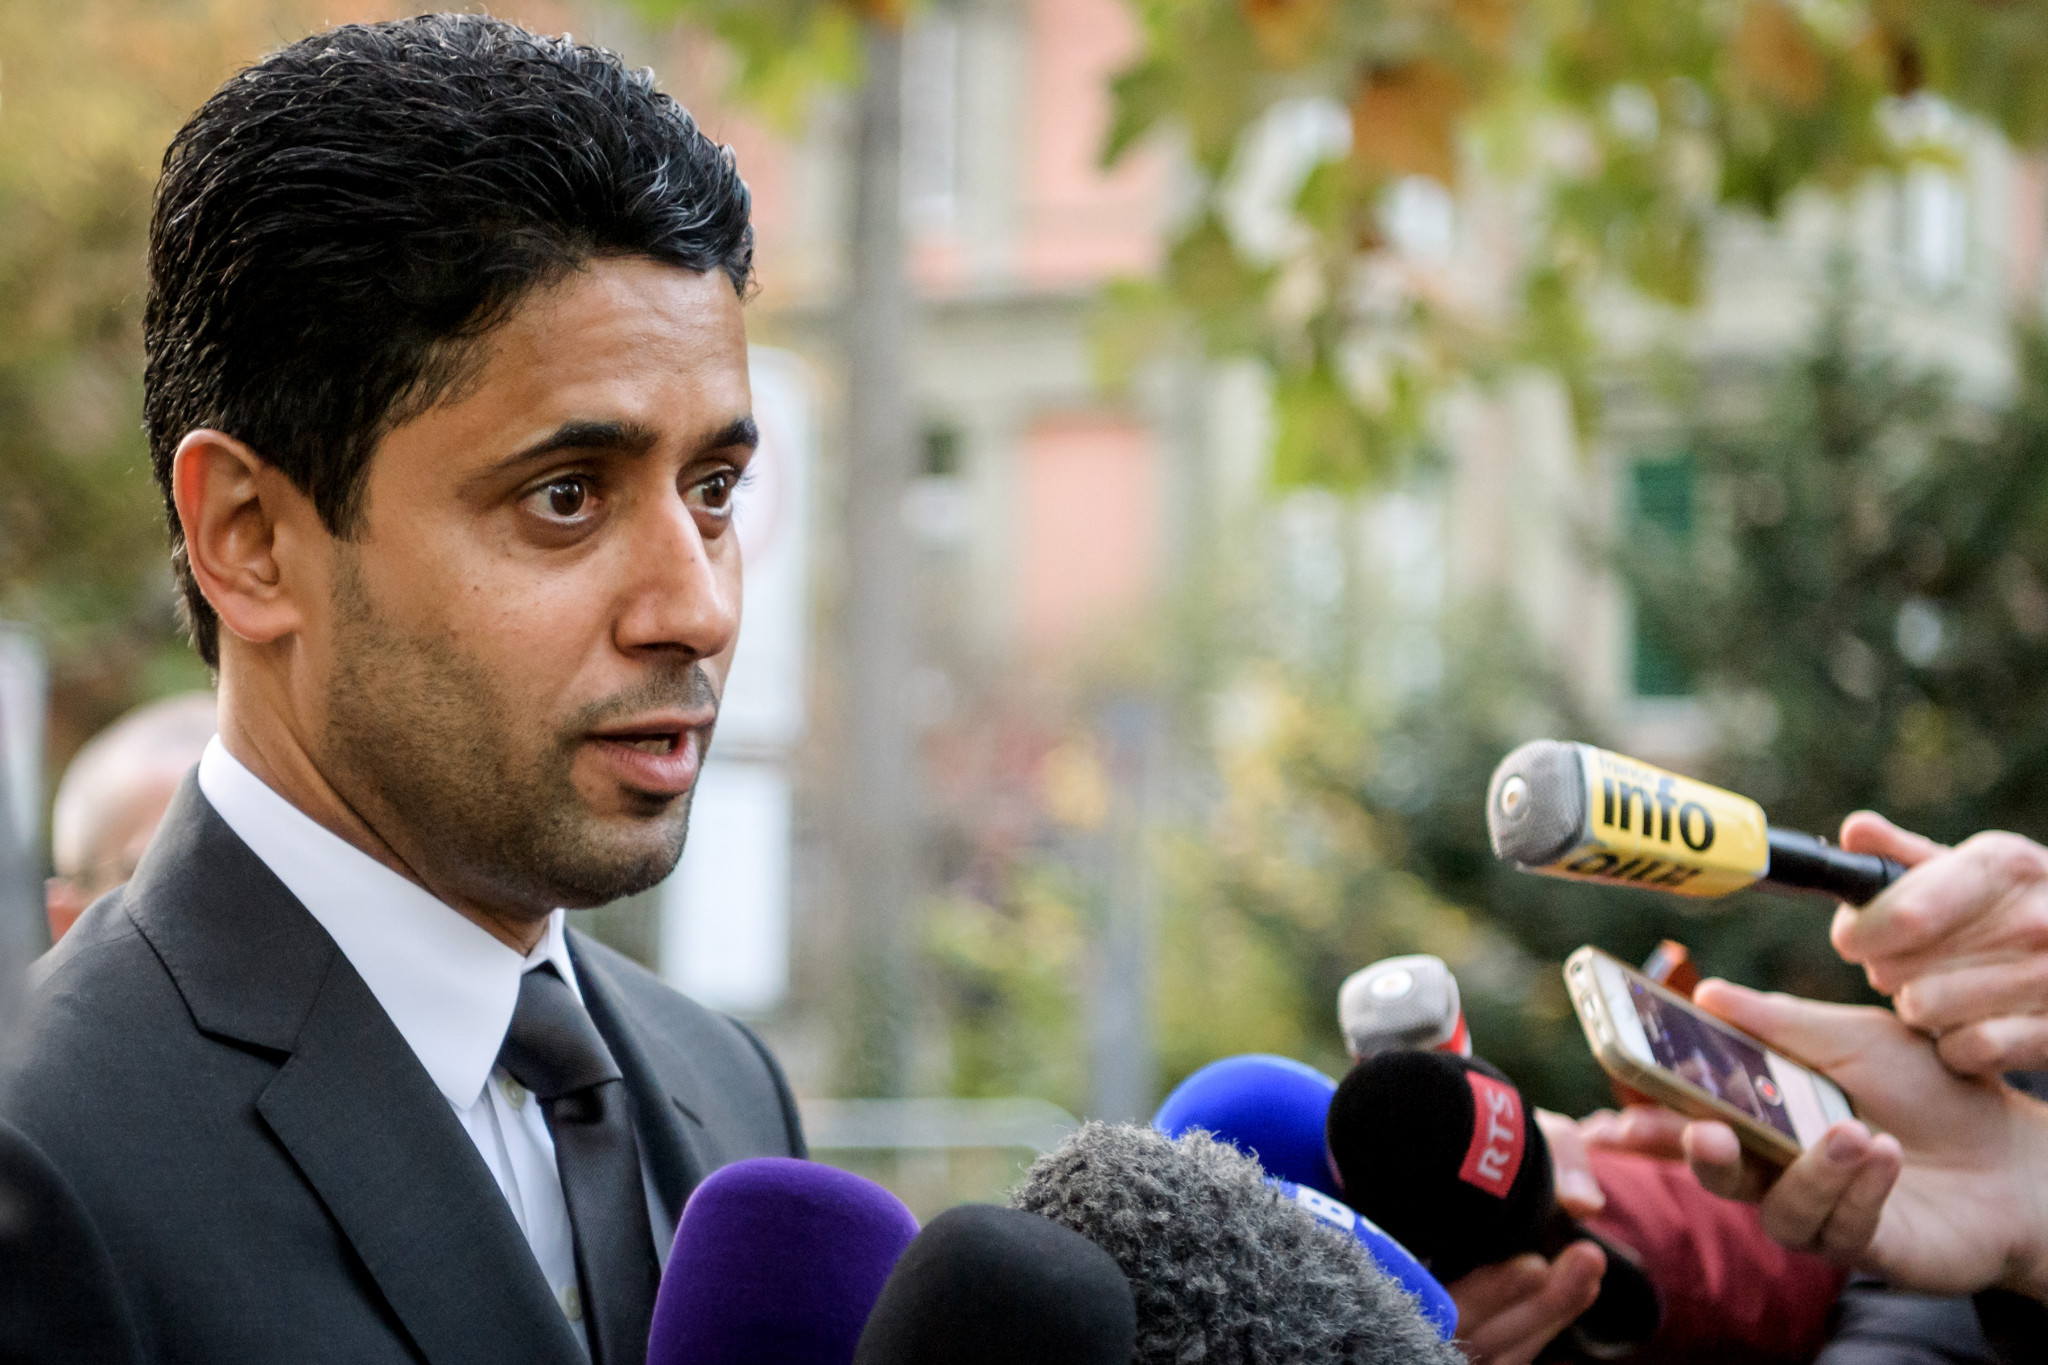 Paris Saint-Germain chairman and beIN Media Group chief executive Nasser Al-Khelaifi was in talks to buy one of the companies accused of bribery in South America ©Getty Images